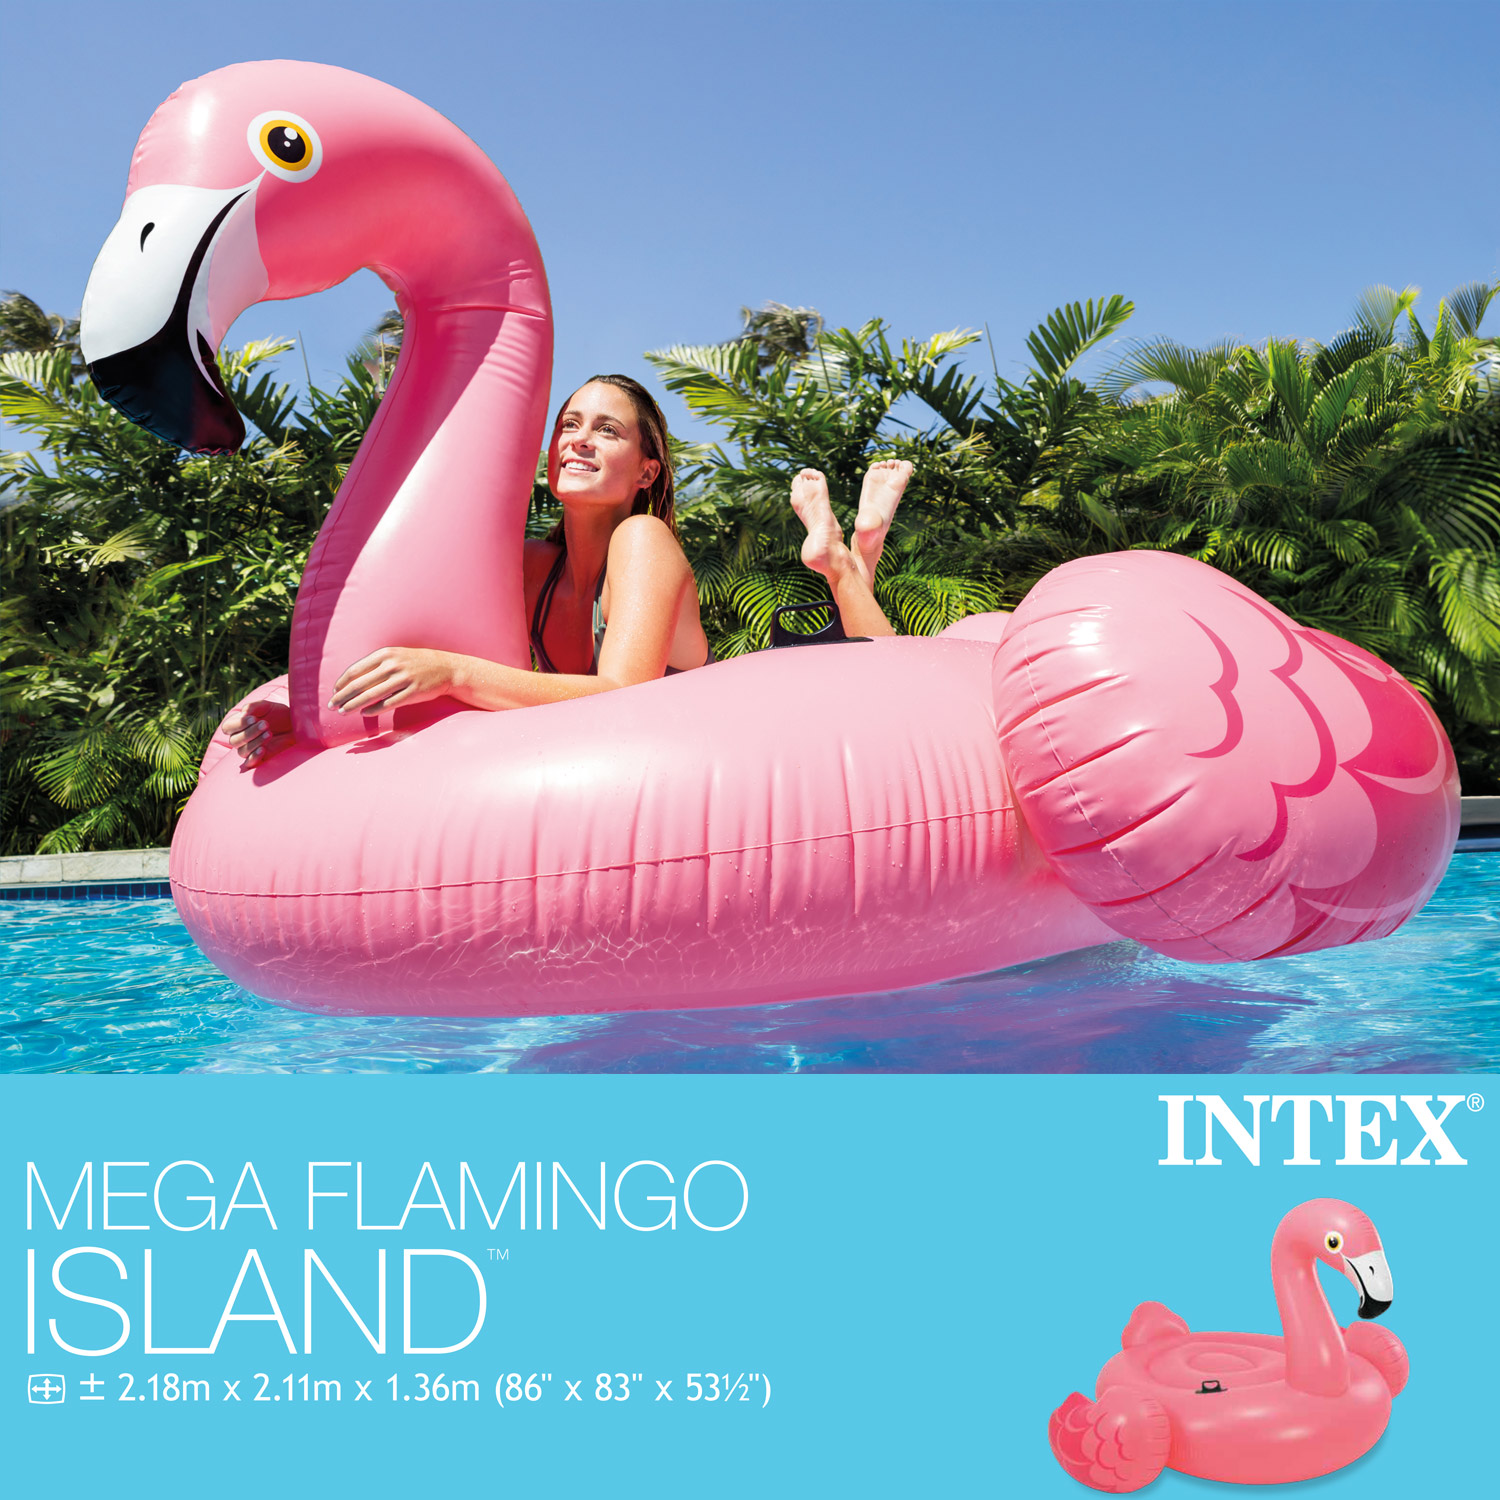 intex 56288 badeinsel flamingo schwimmliege pool lounge wasserliege luftmatratze ebay. Black Bedroom Furniture Sets. Home Design Ideas